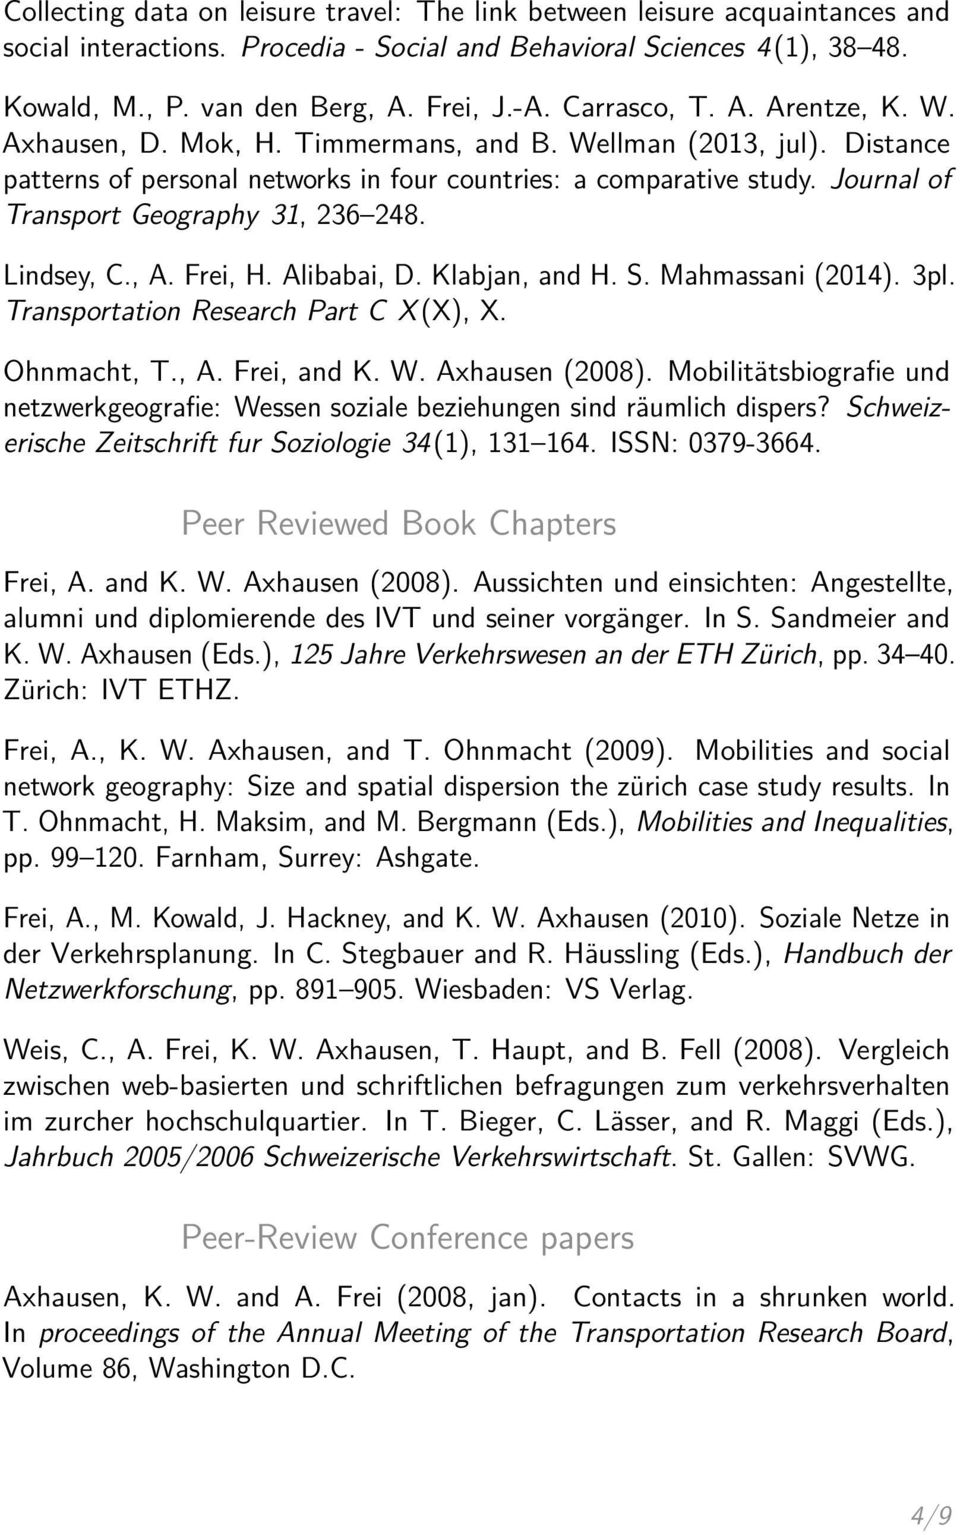 Journal of Transport Geography 31, 236 248. Lindsey, C., A. Frei, H. Alibabai, D. Klabjan, and H. S. Mahmassani (2014). 3pl. Transportation Research Part C X(X), X. Ohnmacht, T., A. Frei, and K. W.